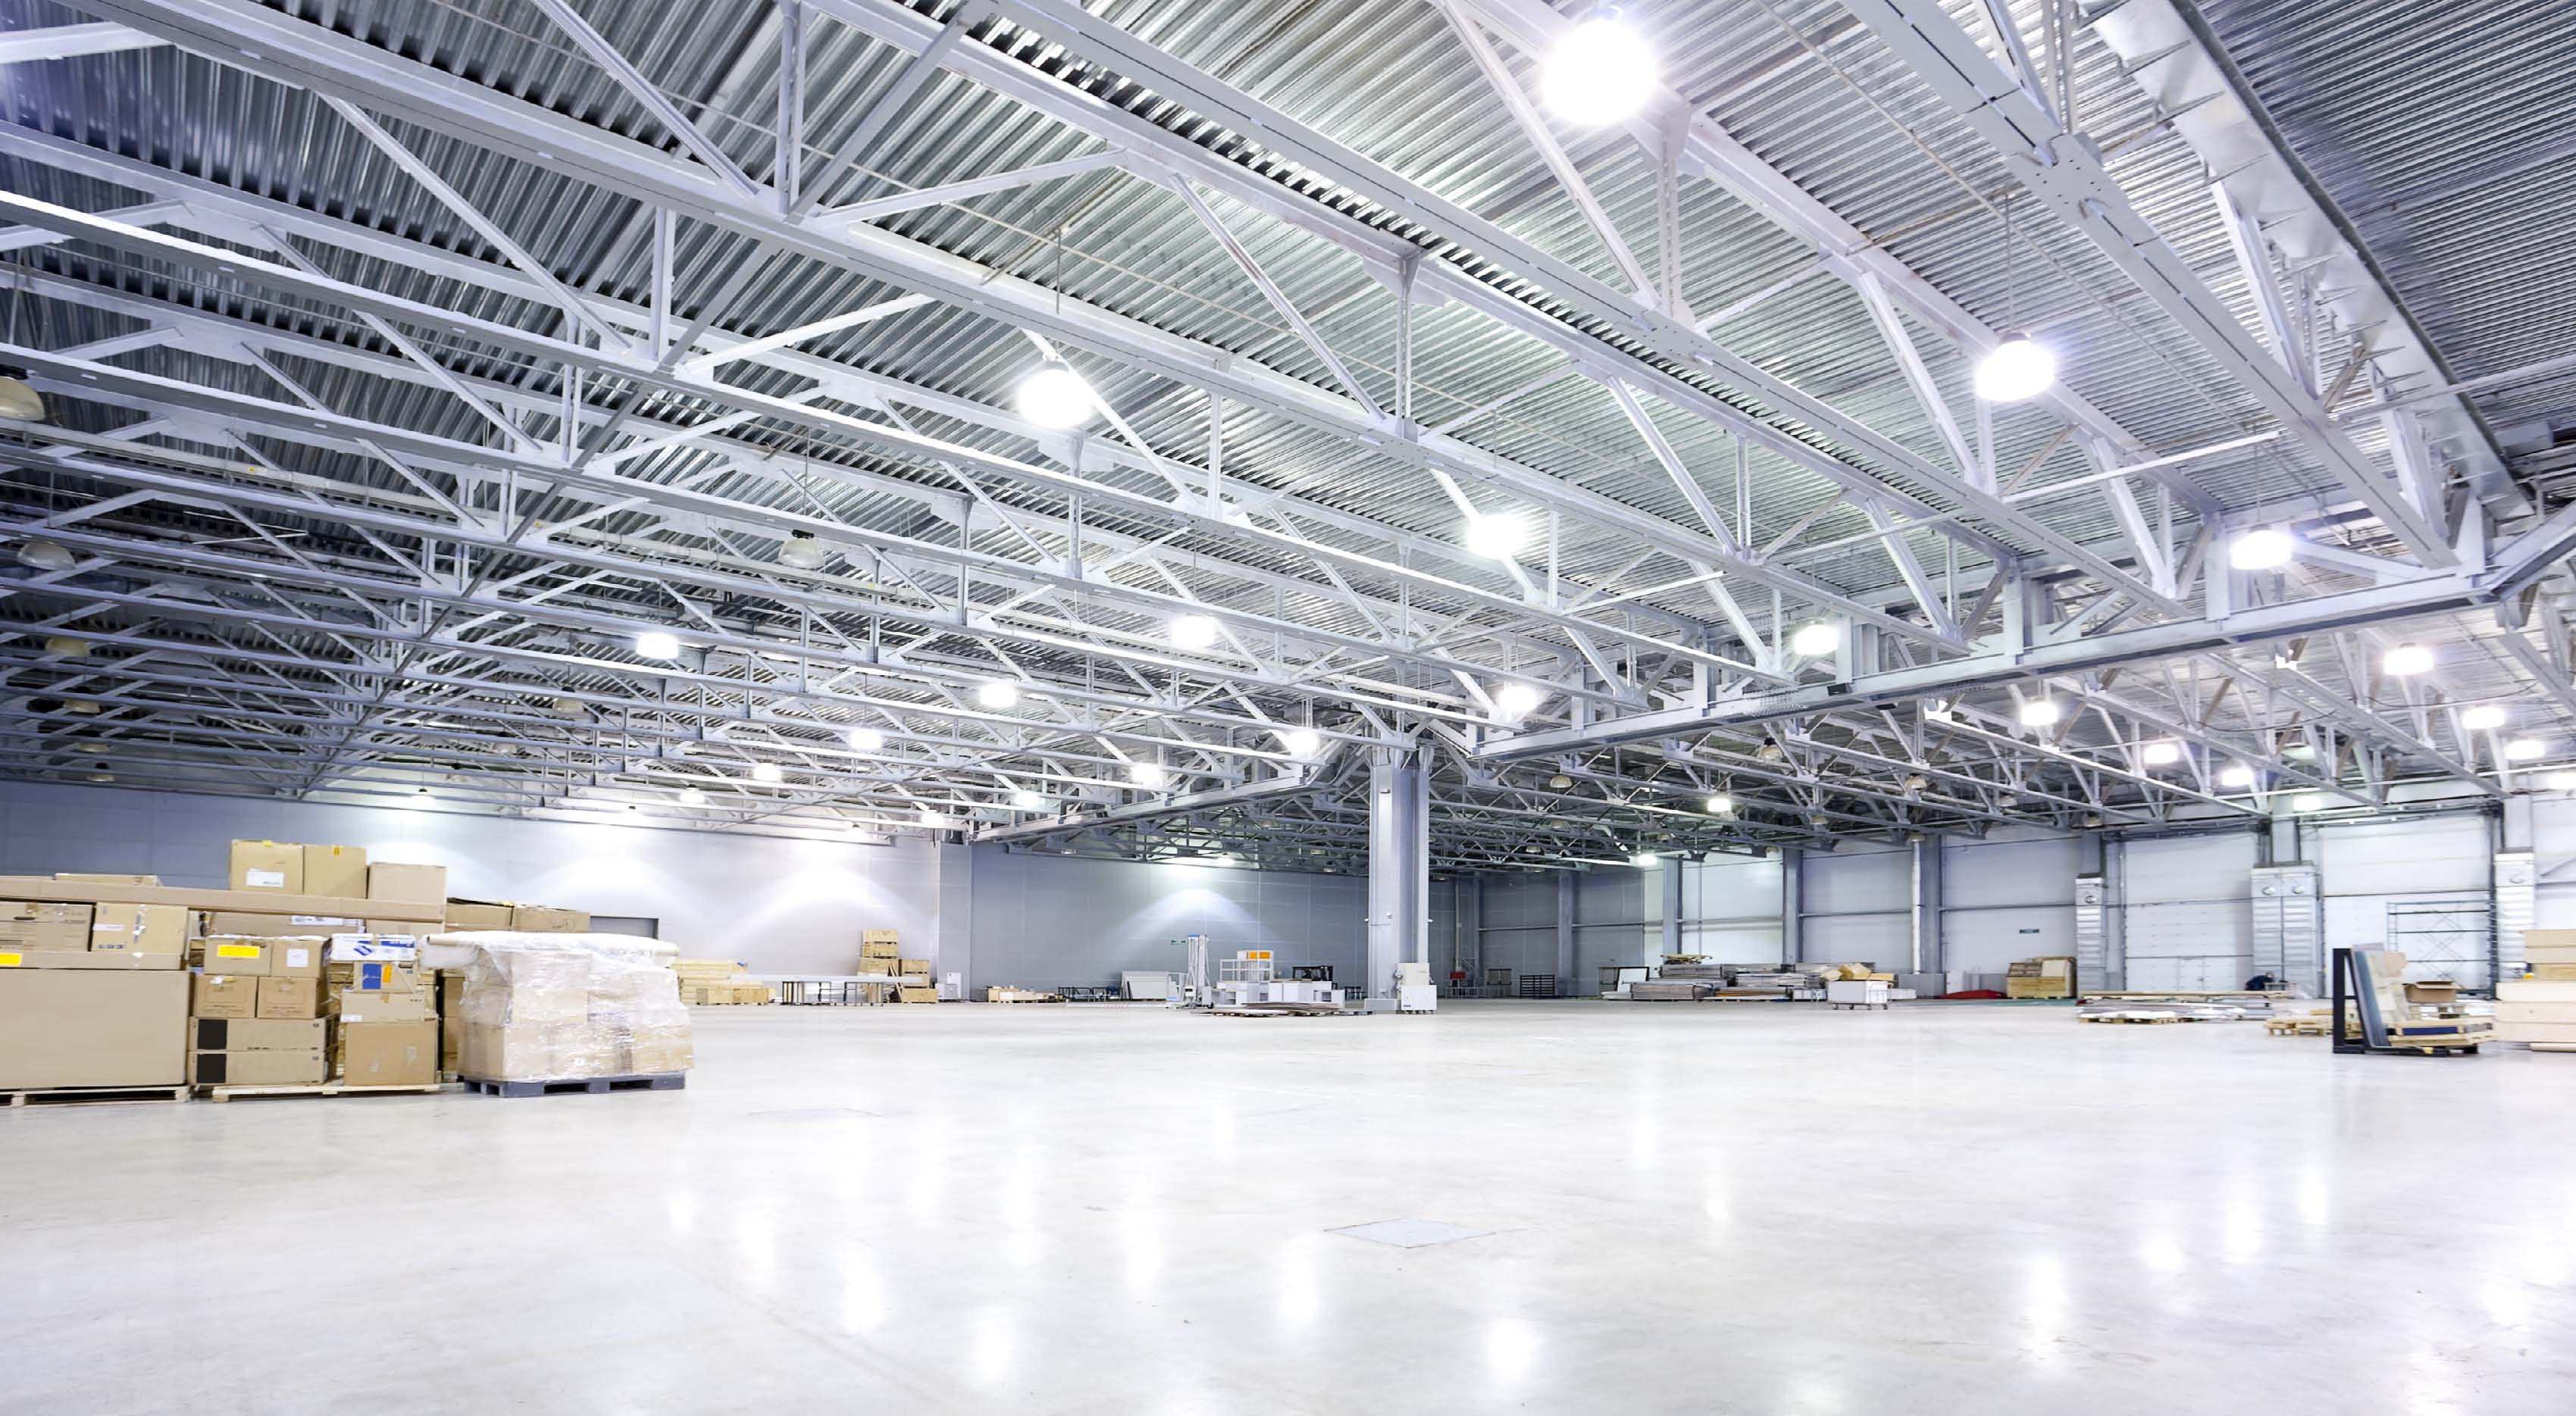 Best ideas about Commercial Led Lighting . Save or Pin Led Light Design Exciting Industrial LED Lights LED Now.